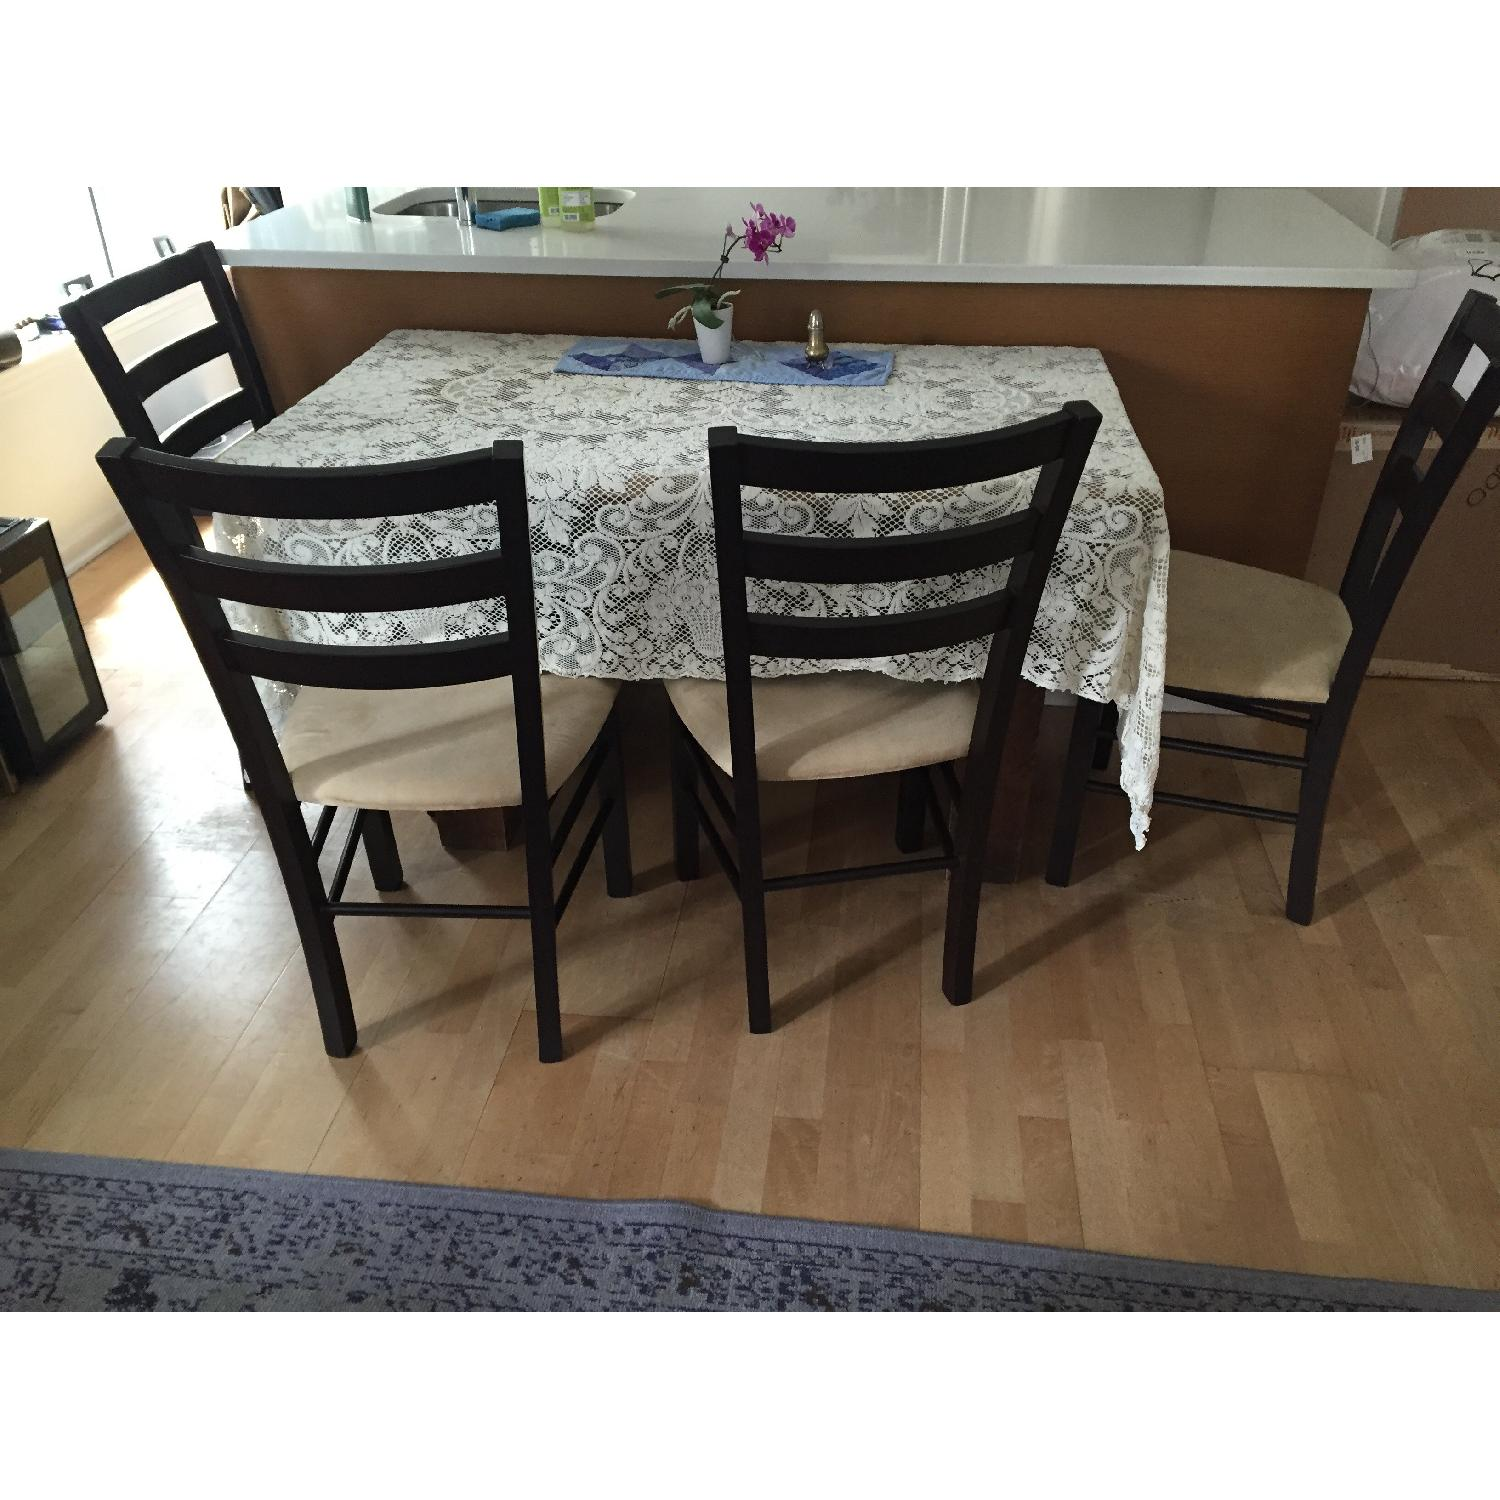 Macy's Wood & Tan Suede Dining Chairs - image-1